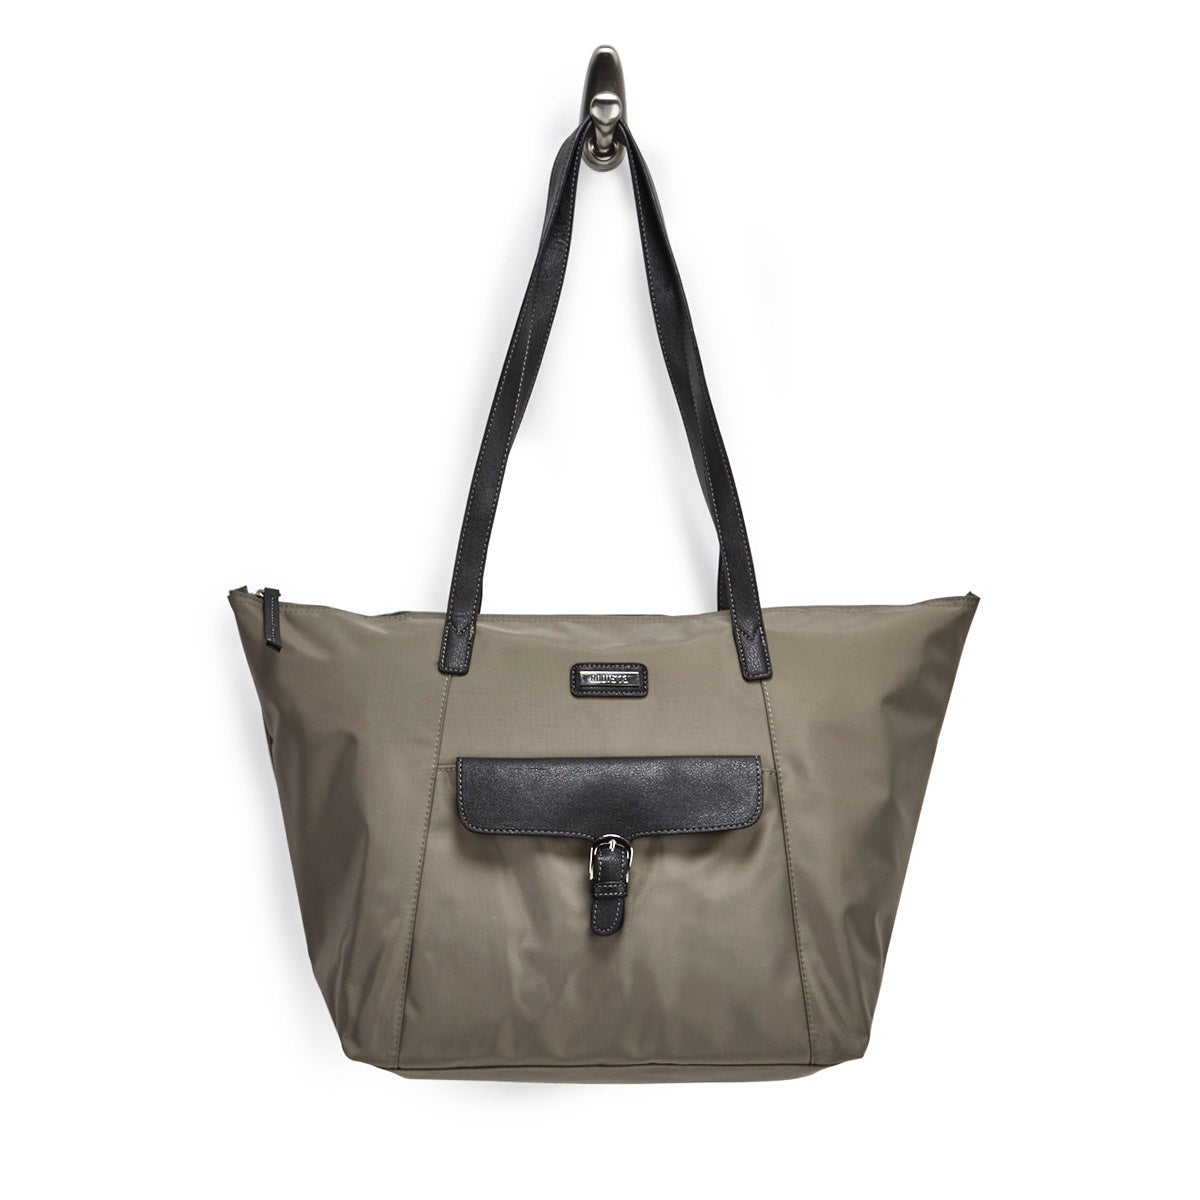 Lds Roots73 khaki 2 in 1 tote bag